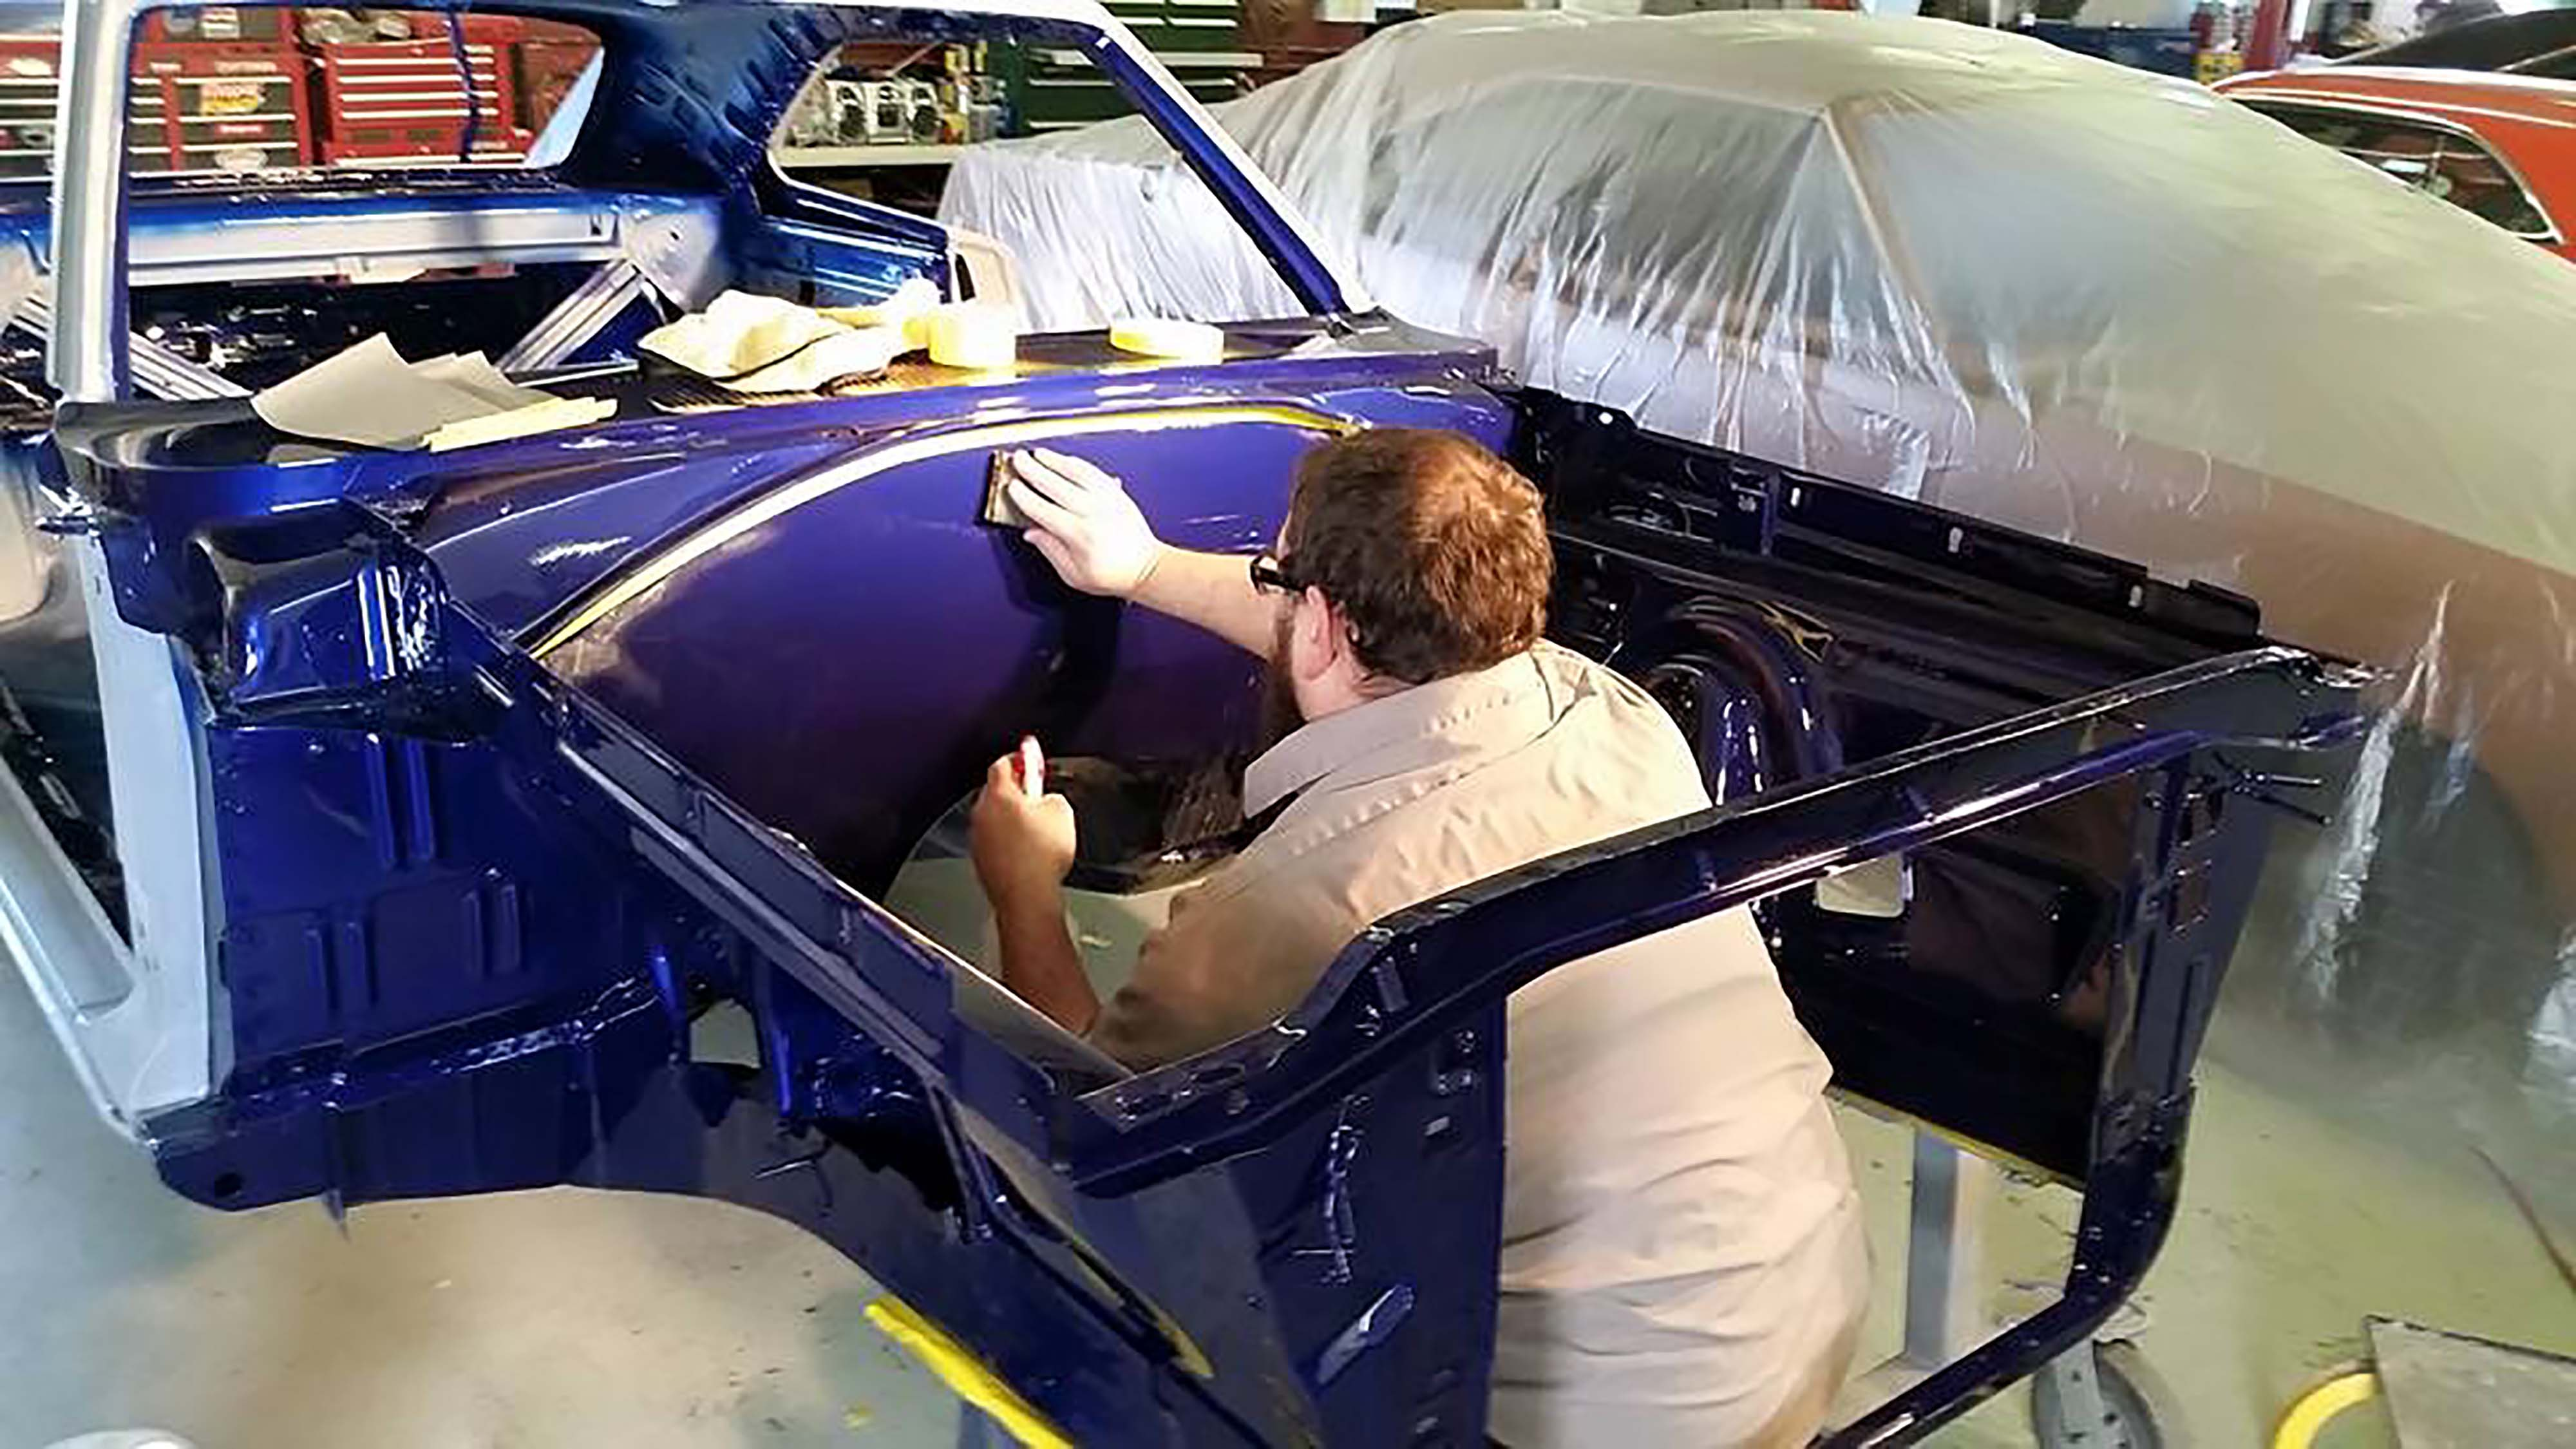 Scott Dowdy, who did all of the body work on the car, got into the action too, helping Webb by sanding and buffing the smoothed-out firewall.